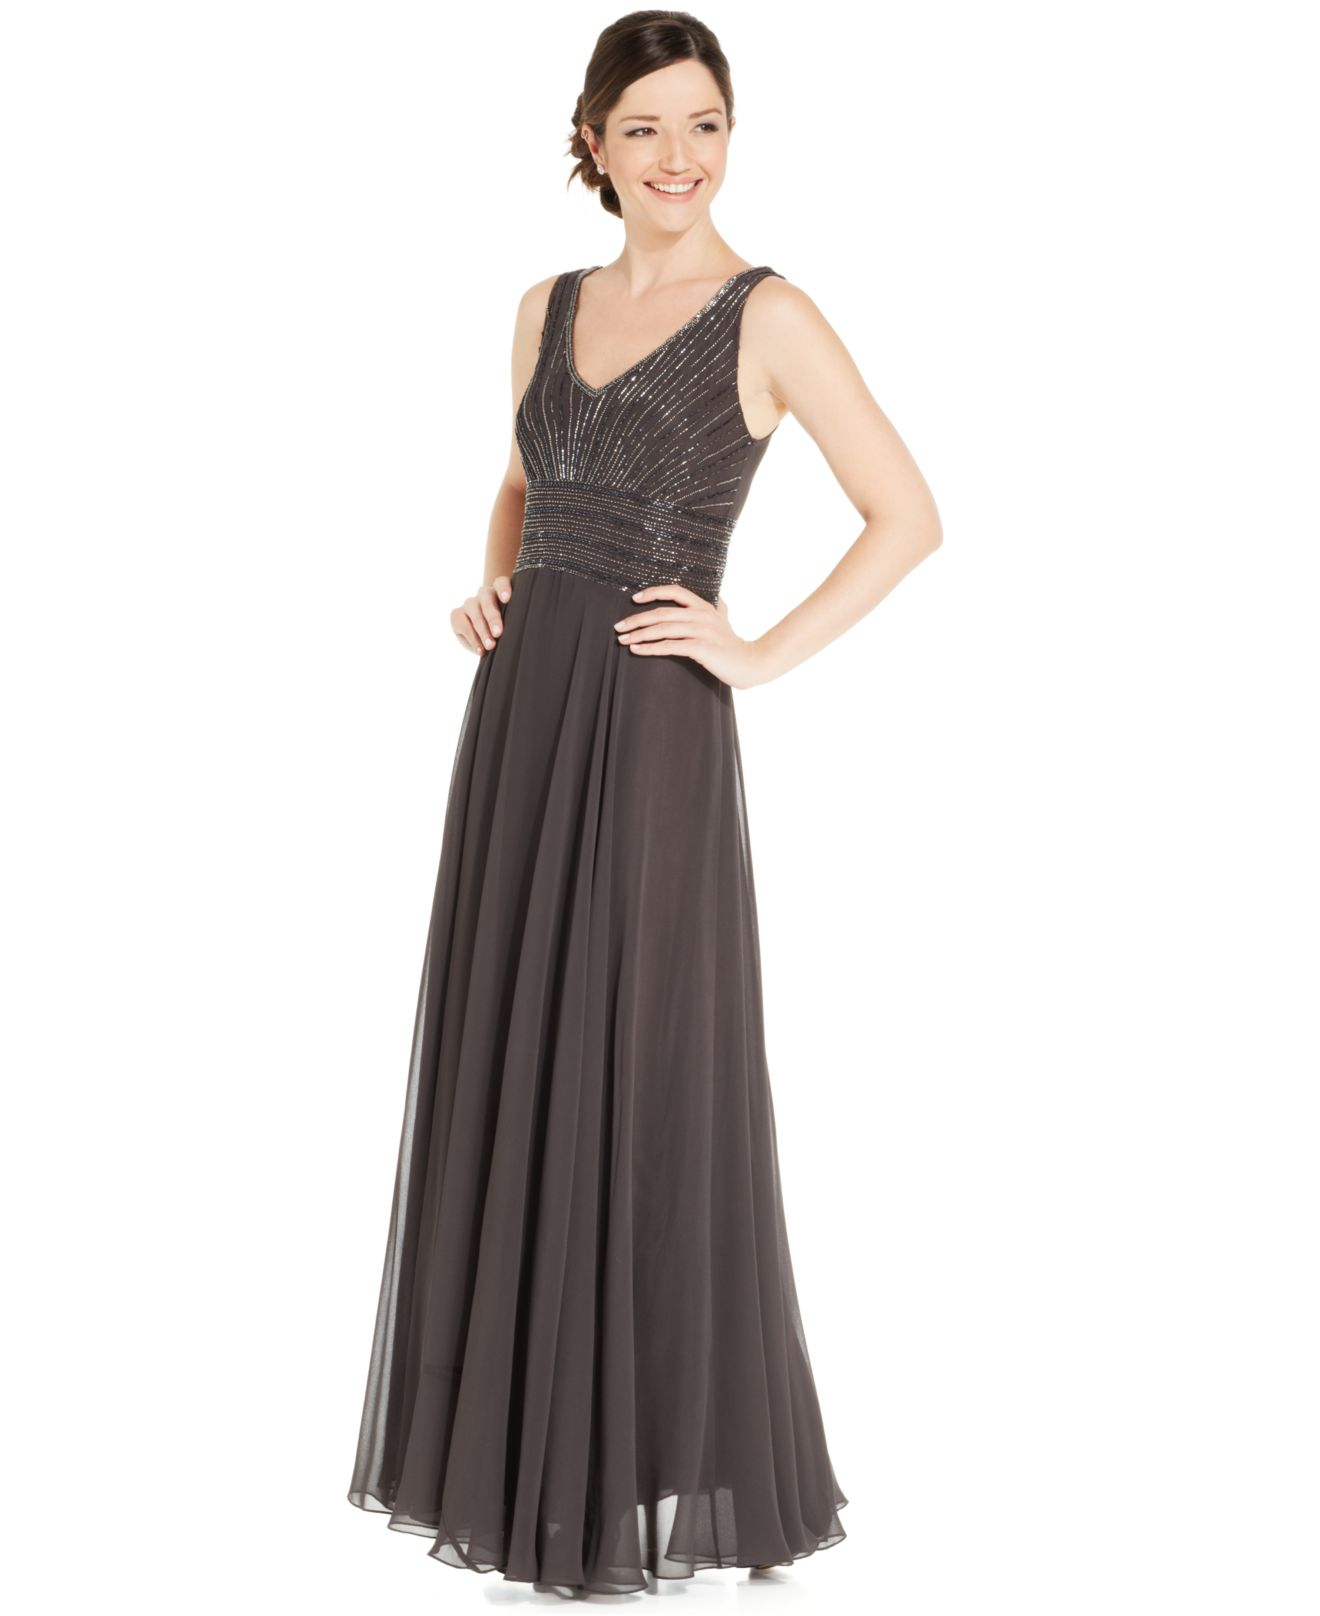 3766cfb59c11 J Kara Sleeveless Beaded Chiffon Gown And Jacket in Brown - Lyst